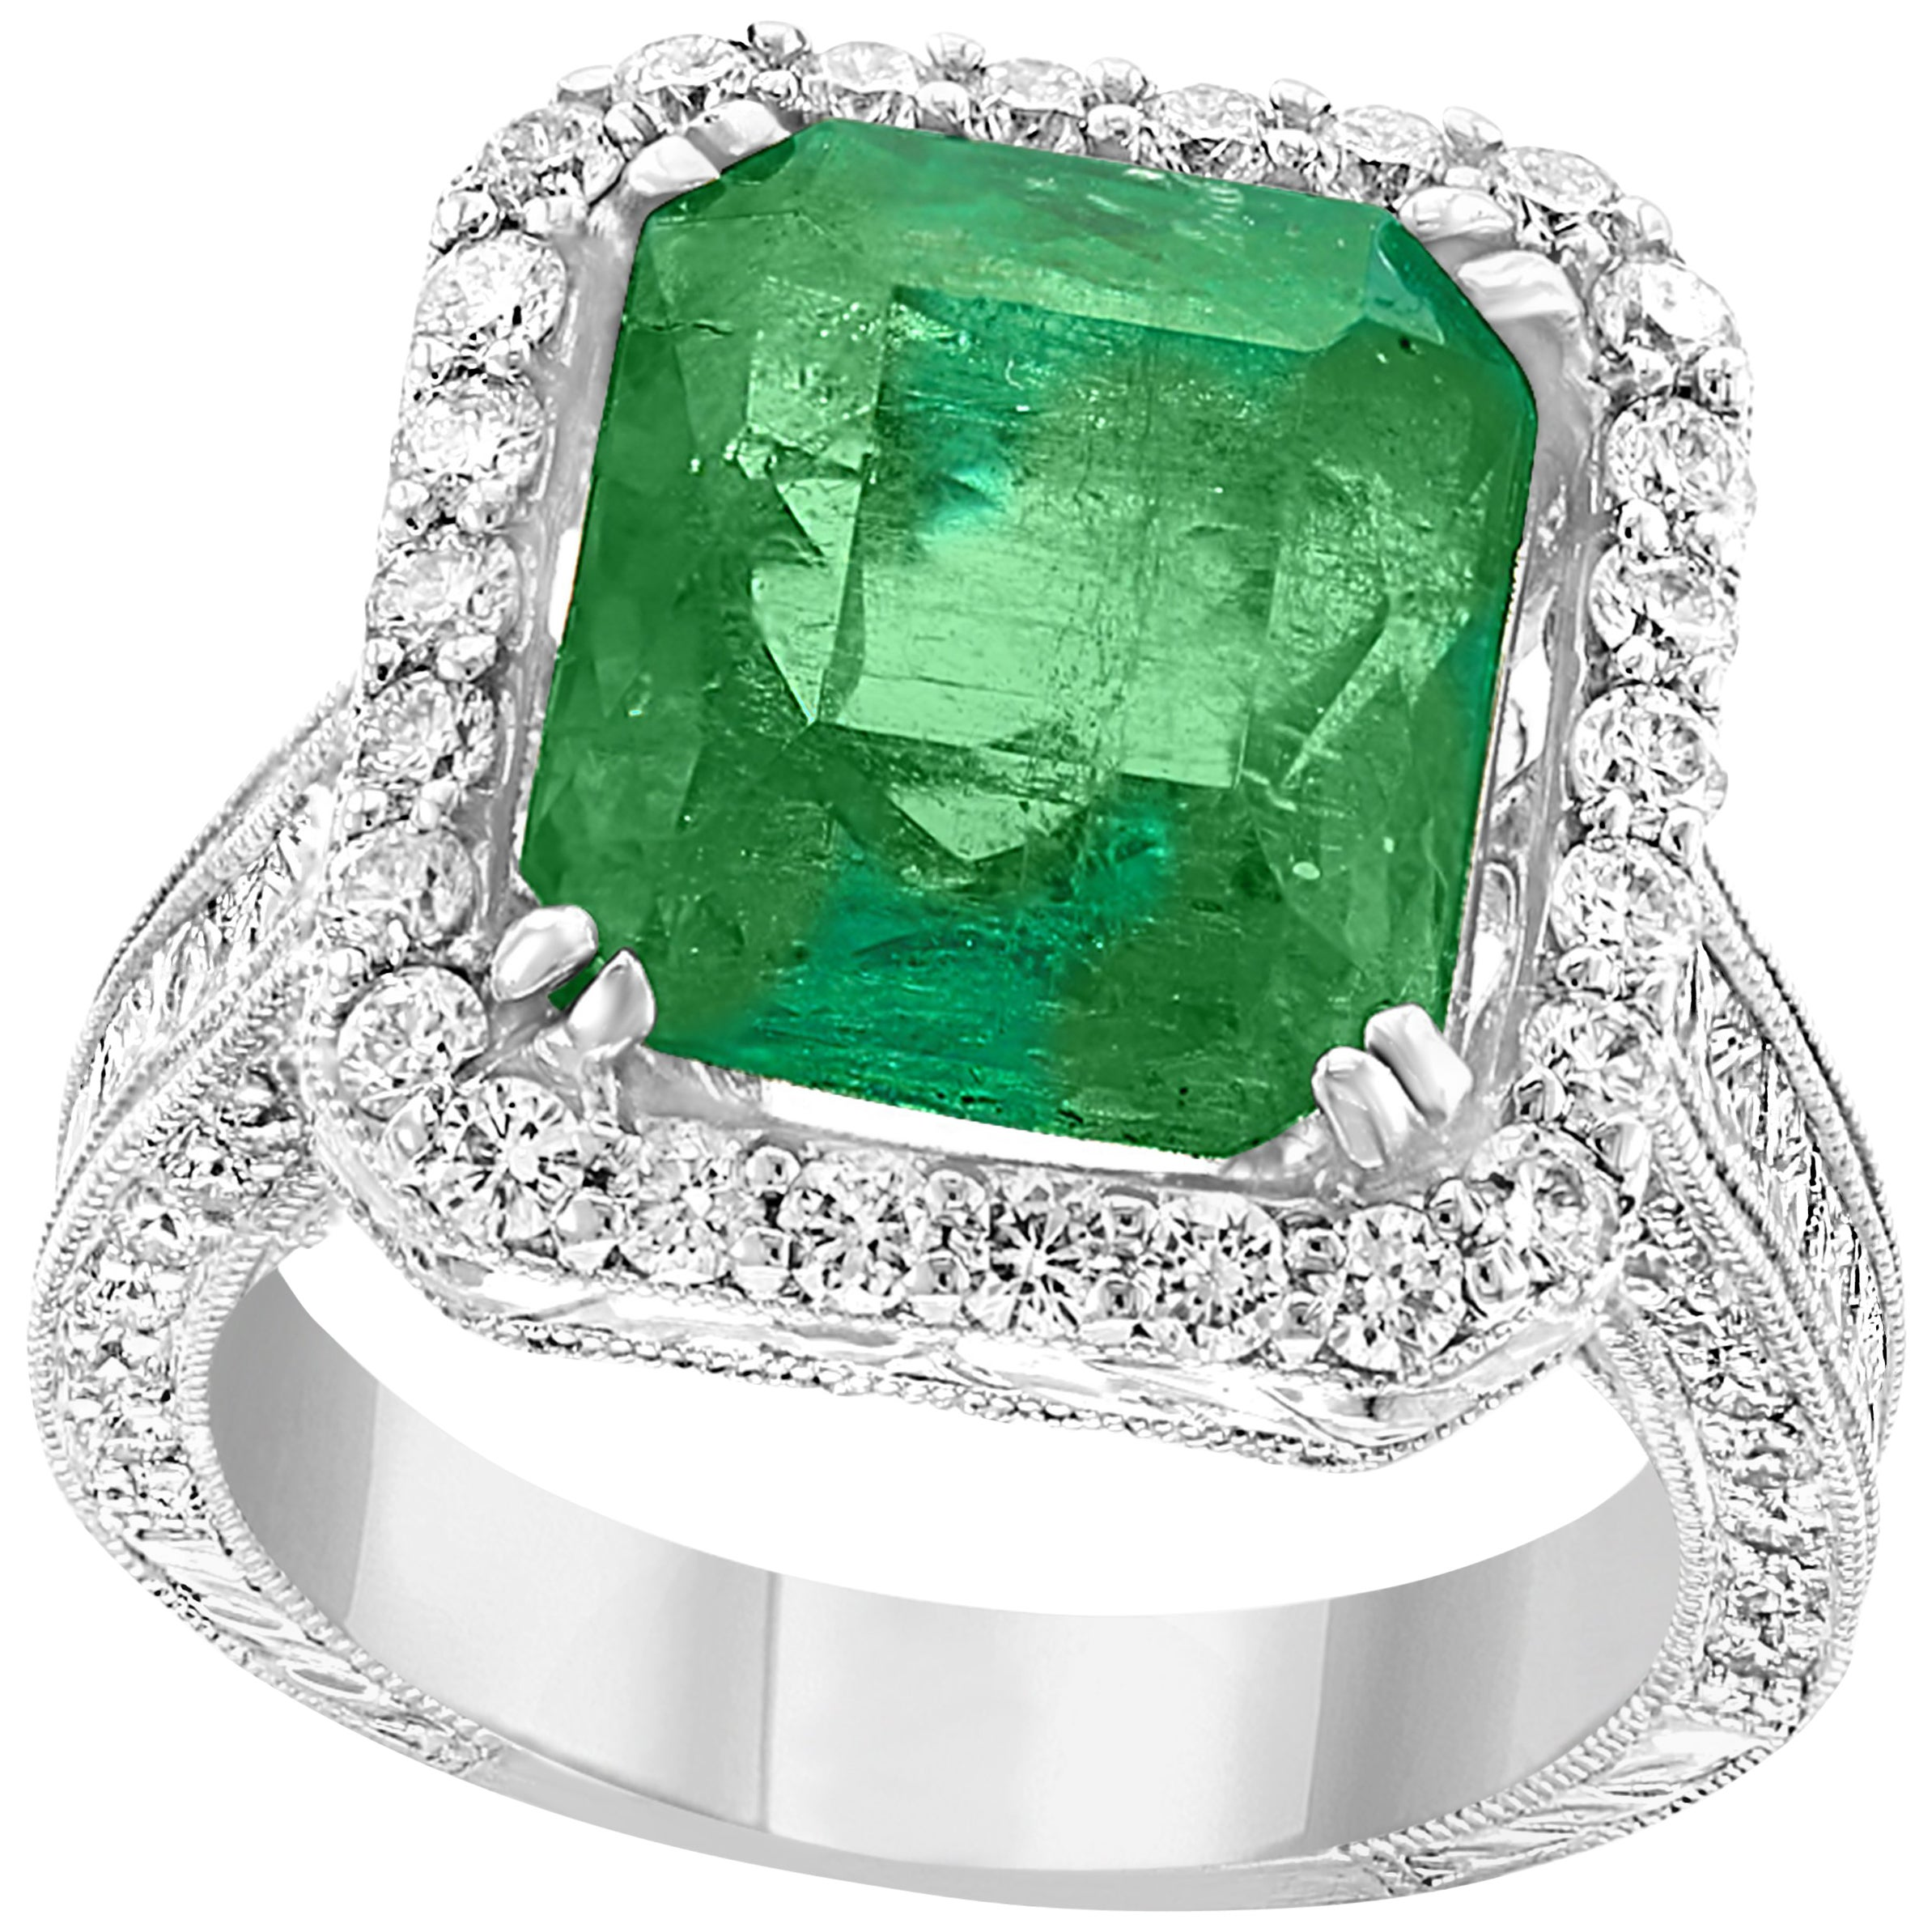 8 Carat Emerald Cut Colombian Emerald and Diamond 18 Karat Gold Ring Estate